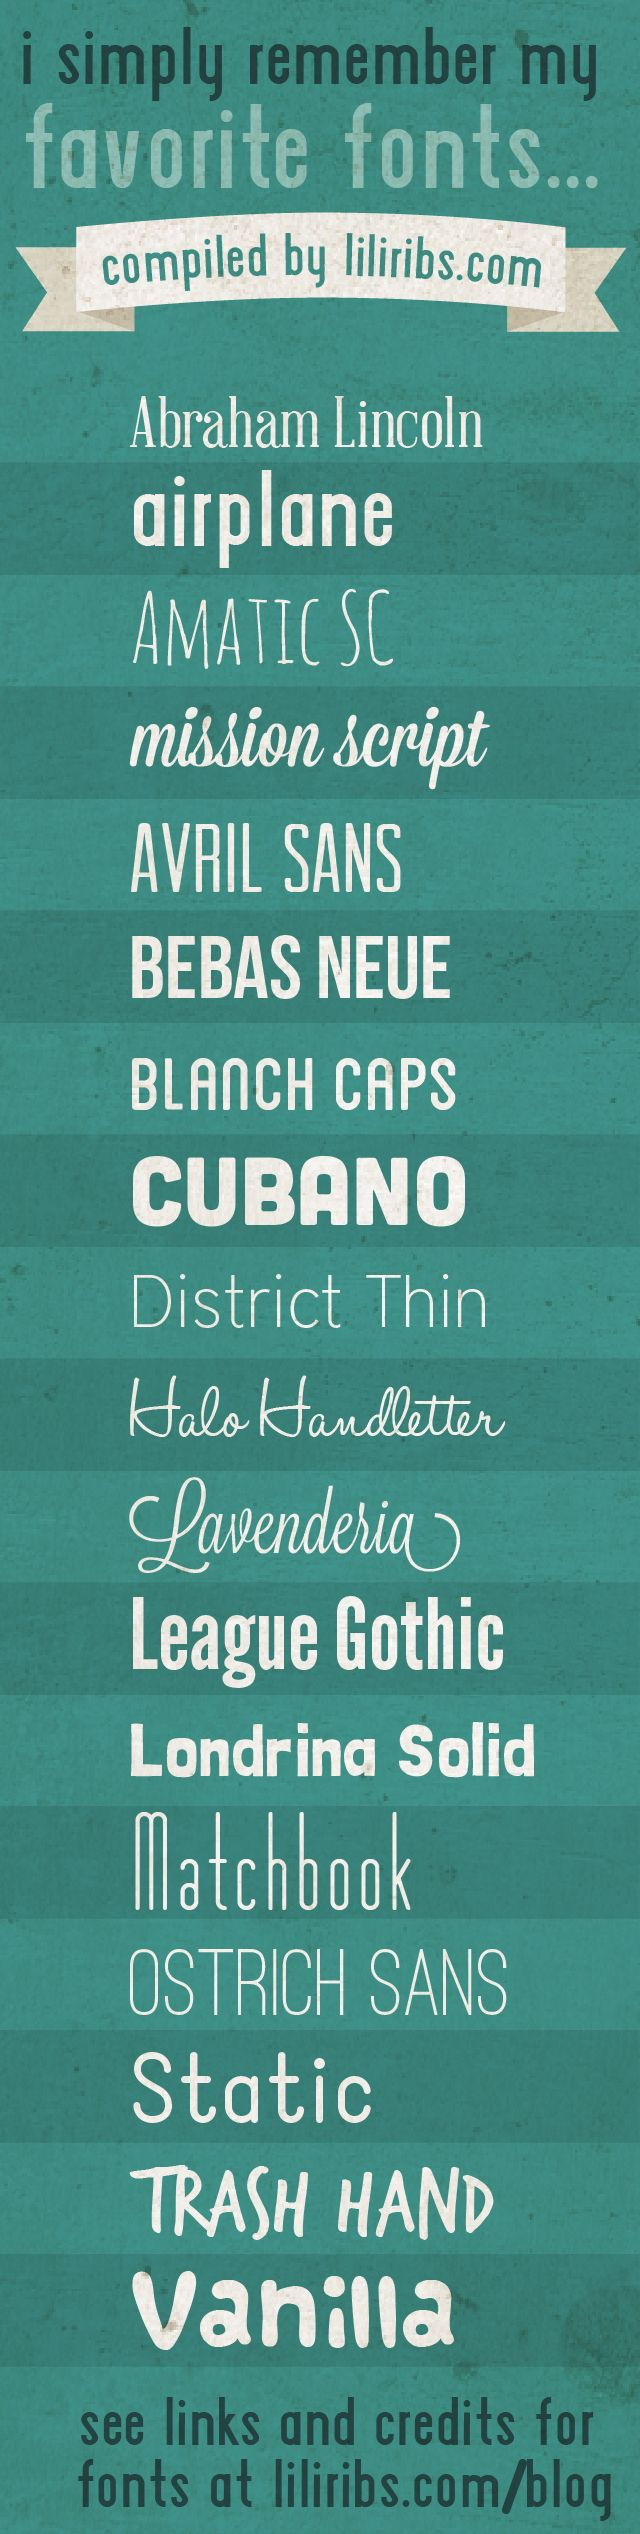 My favorite fonts! See links for fonts at liliribs.com/blog